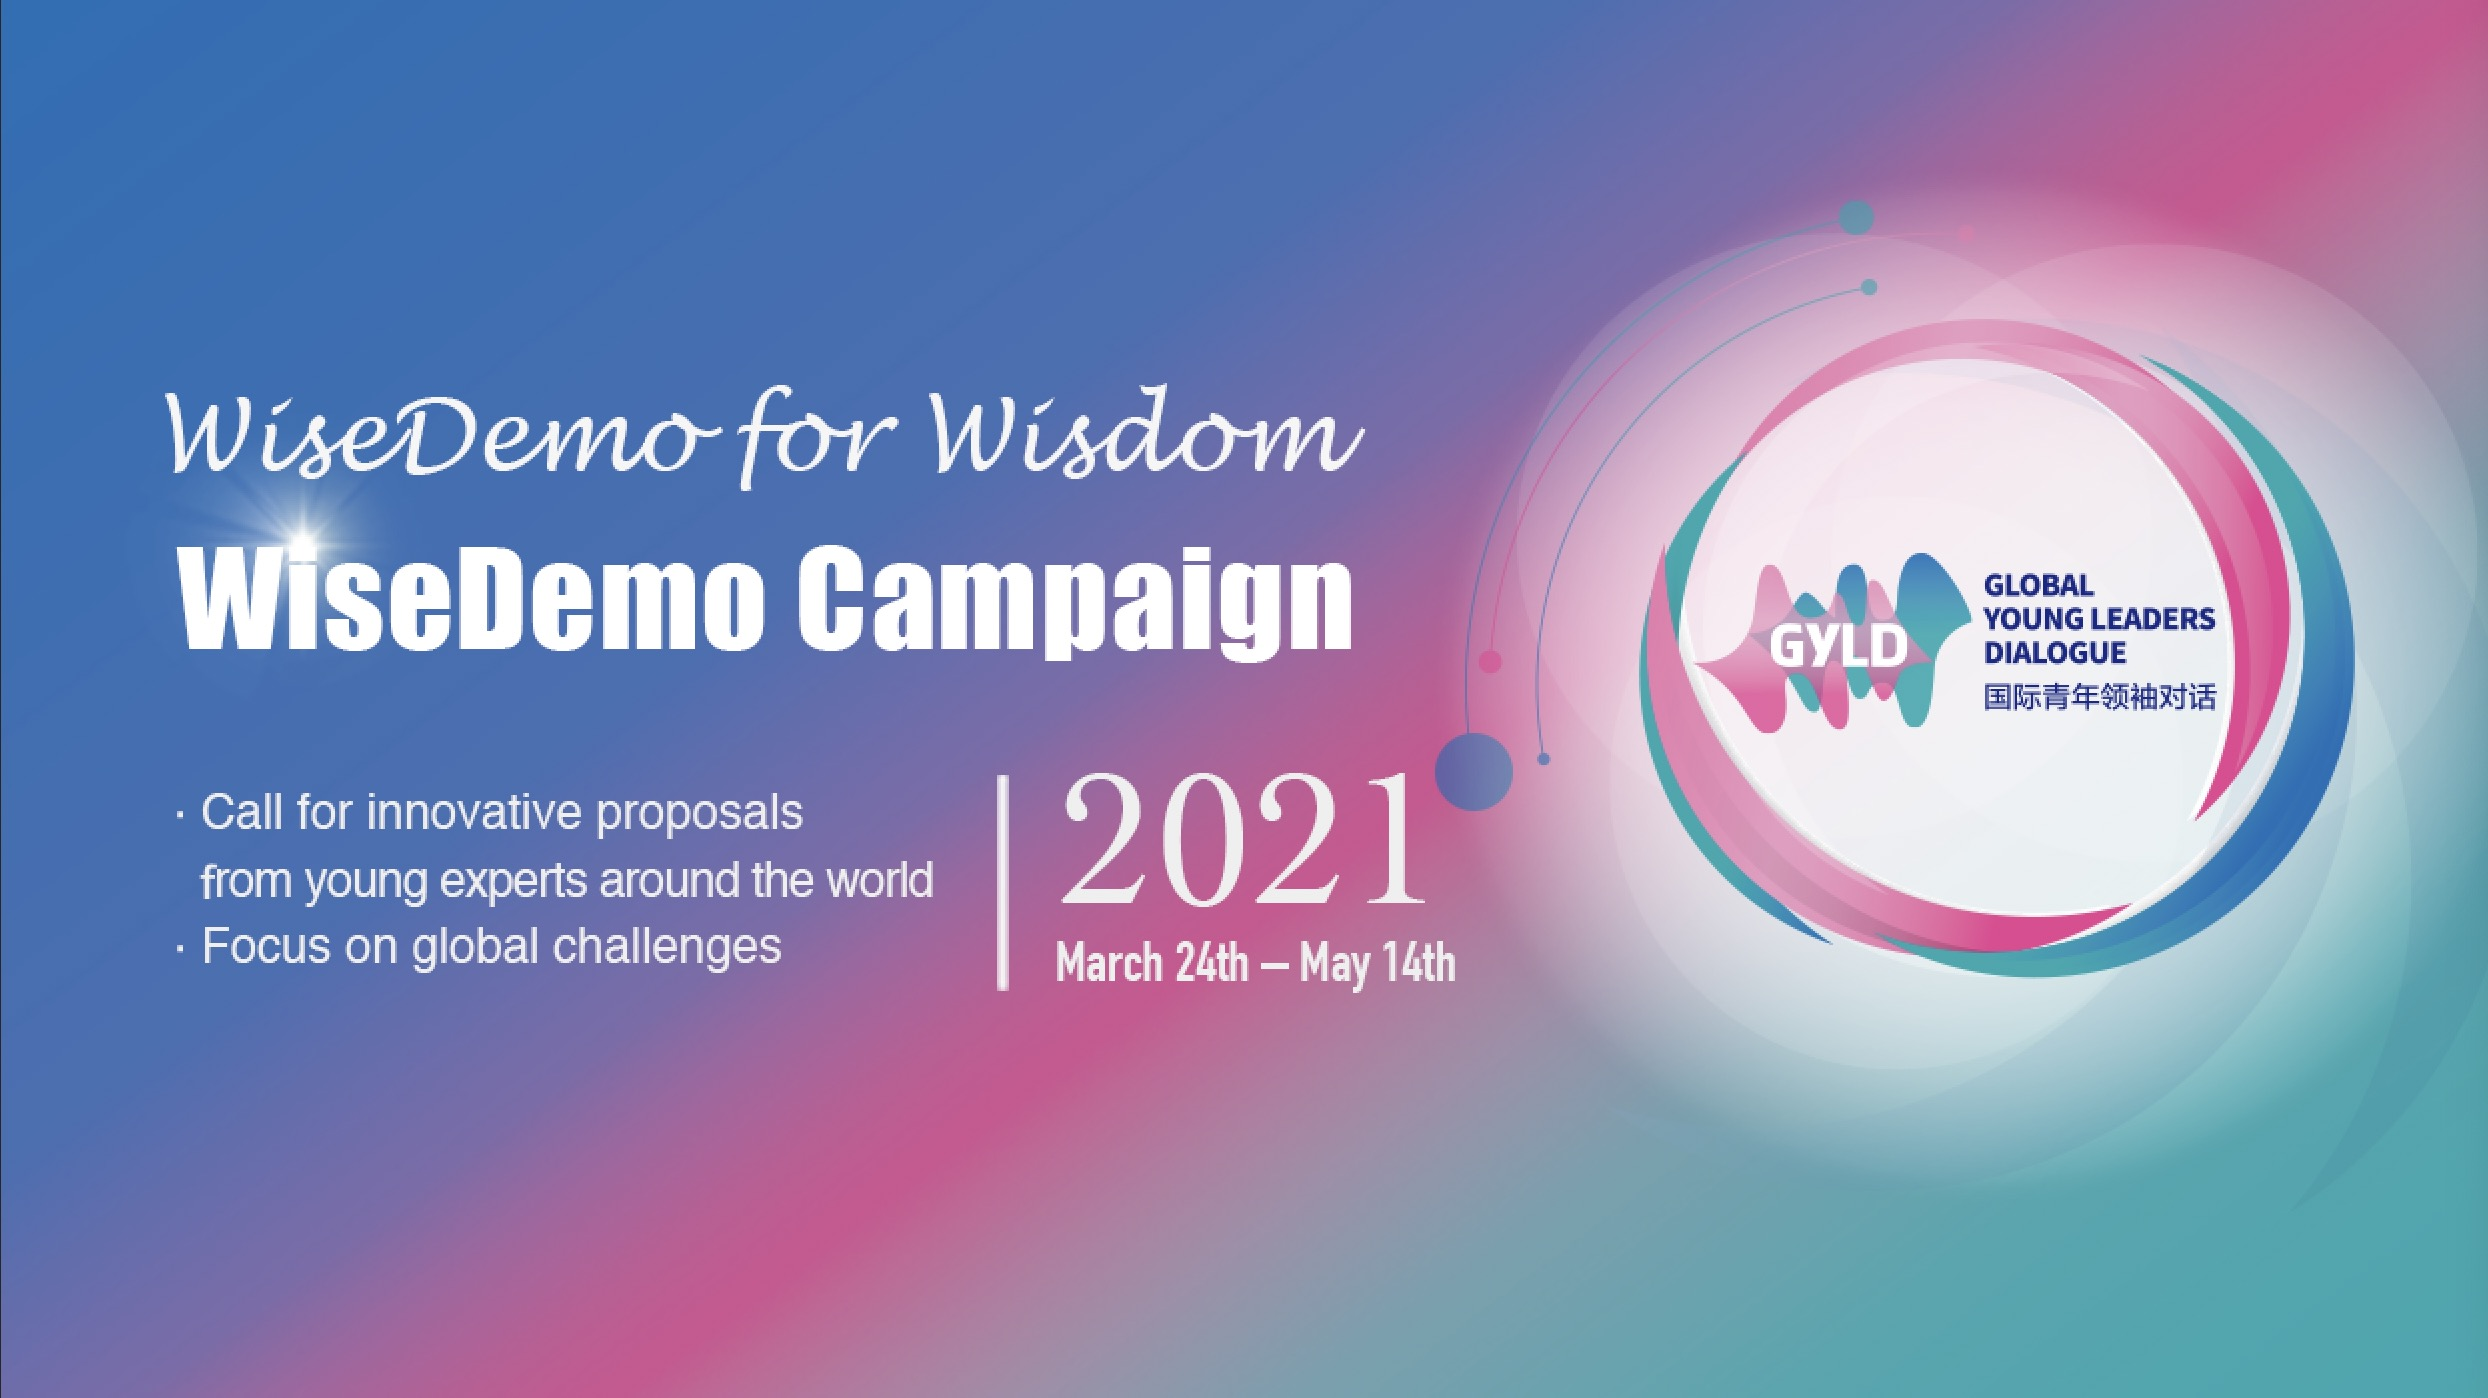 WiseDemo Campaign Launched – Calling for Innovative Proposals from Global Young Experts